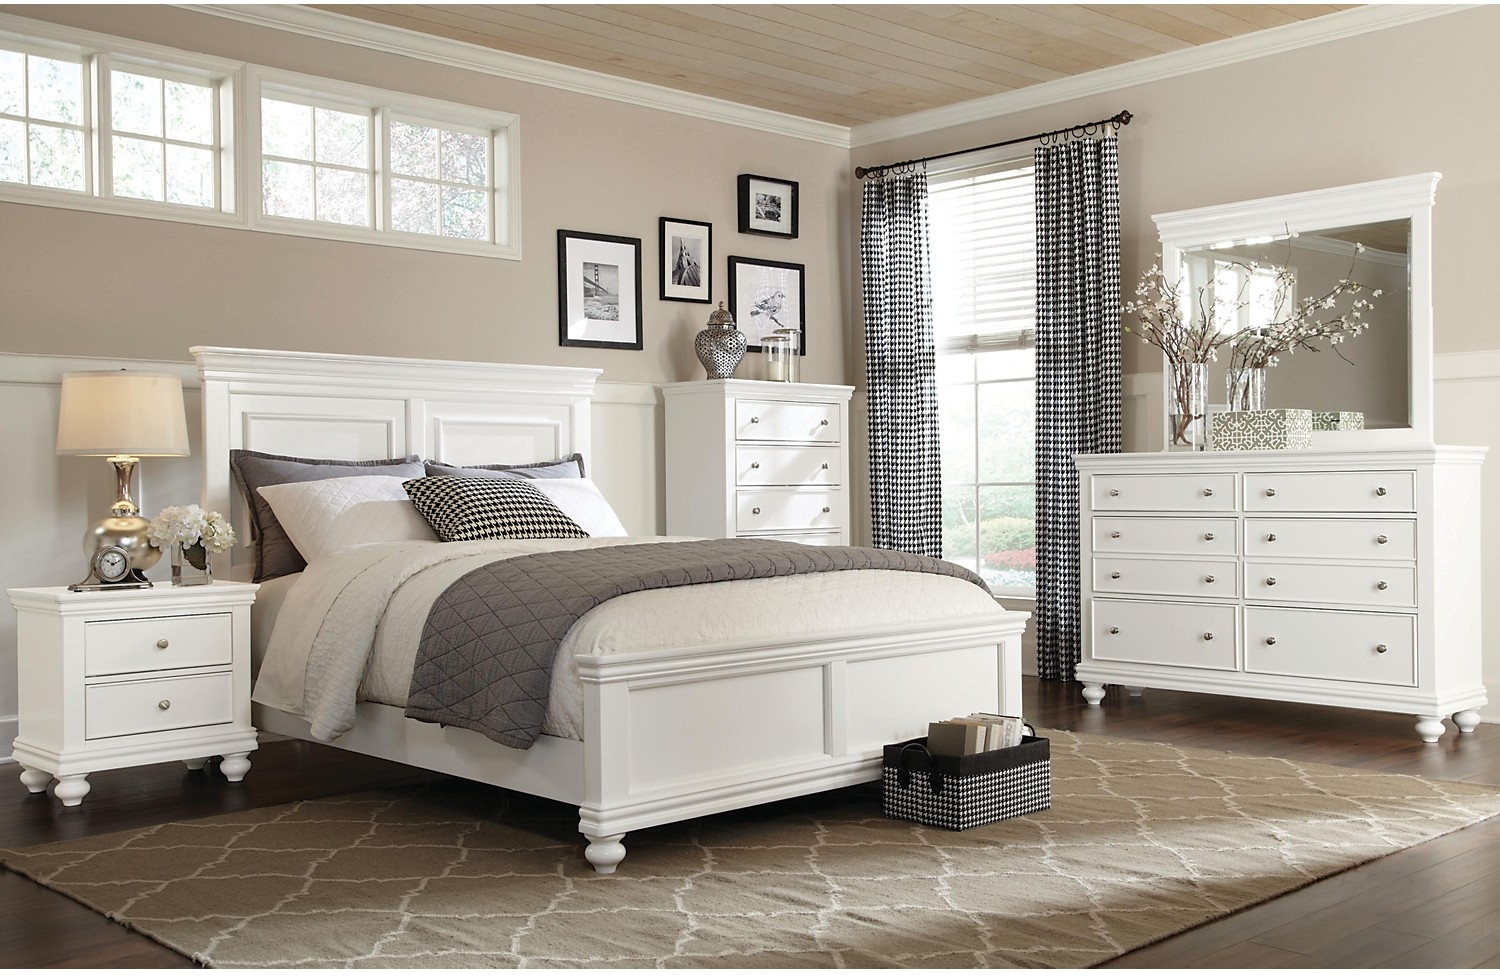 7 piece king bedroom furniture sets photo - 3